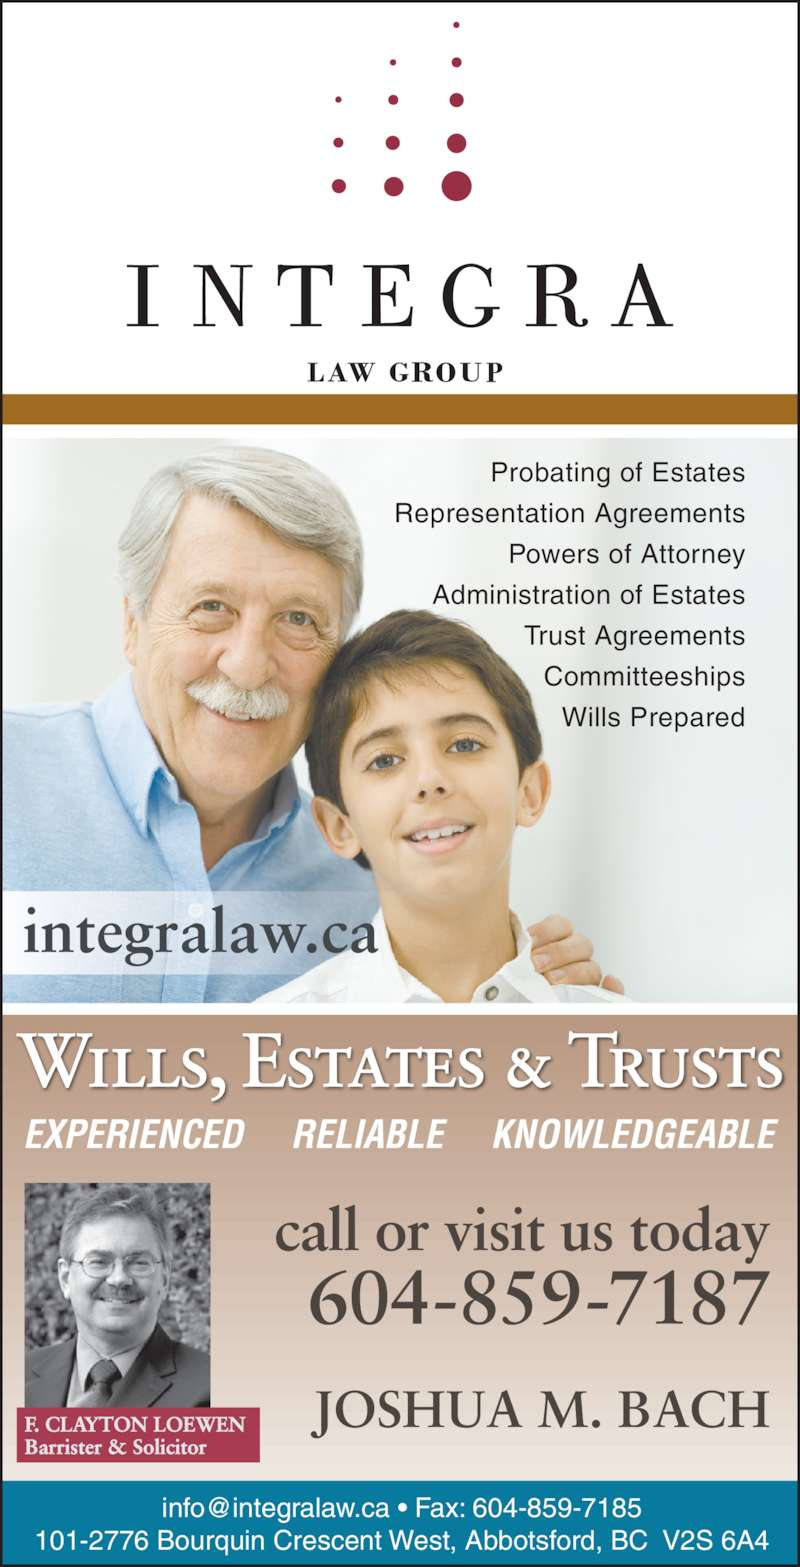 Integra Law Group (604-859-7187) - Display Ad - Probating of Estates F. CLAYTON LOEWEN Barrister & Solicitor JOSHUA M. BACH EXPERIENCED     RELIABLE     KNOWLEDGEABLE Wills, Estates & Trusts 101-2776 Bourquin Crescent West, Abbotsford, BC  V2S 6A4 Representation Agreements Powers of Attorney Administration of Estates Trust Agreements Committeeships Wills Prepared integralaw.ca call or visit us today 604-859-7187